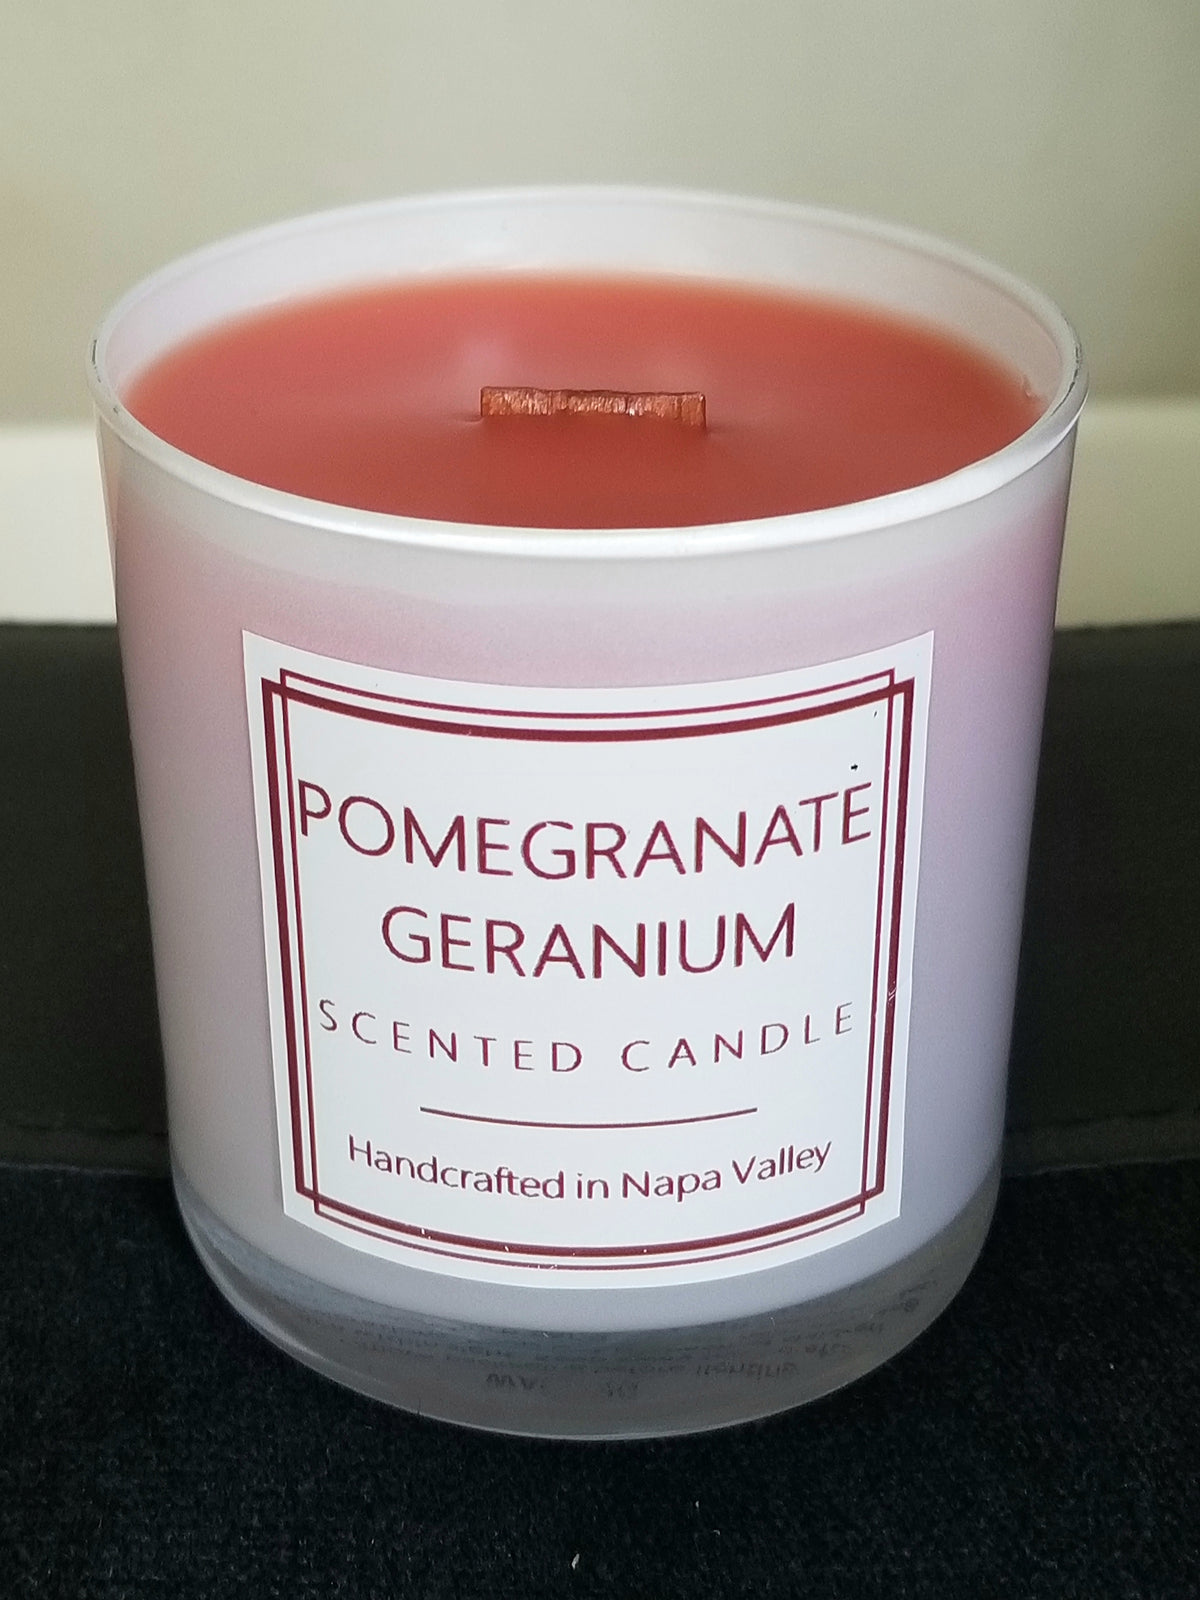 Scented Candle - Pomegranate Geranium